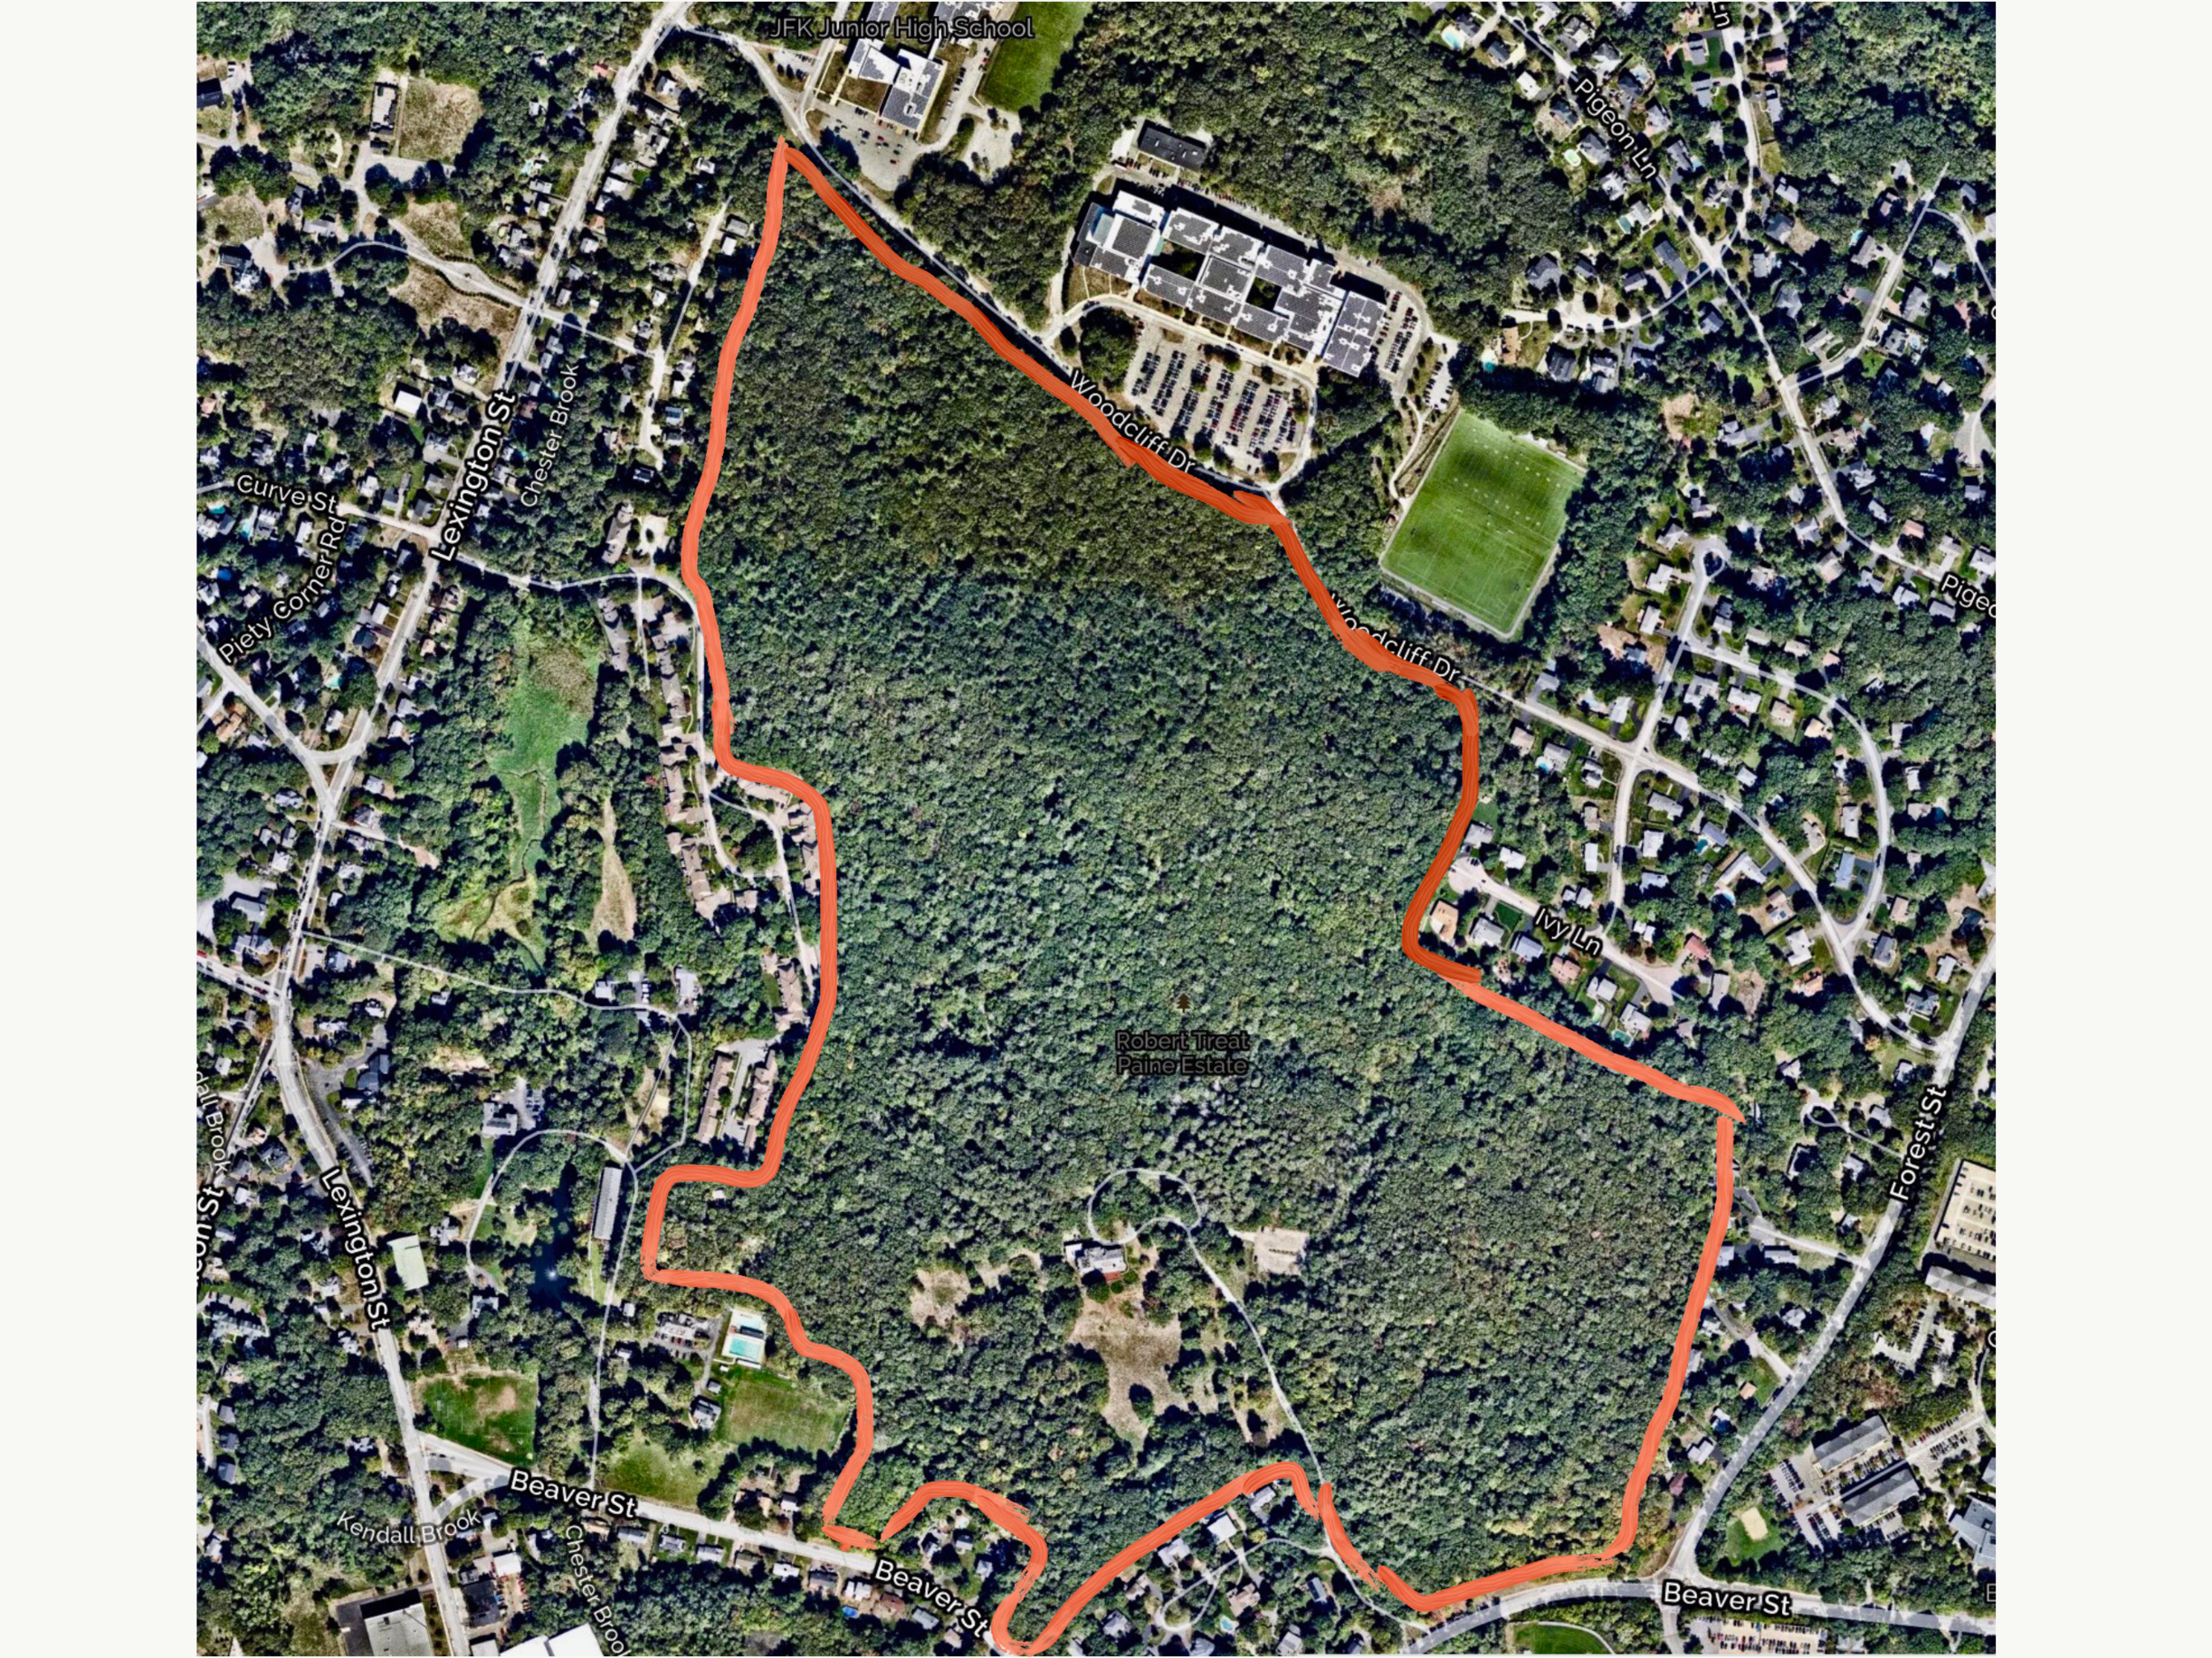 The entire Paine Estate woods outlined in orange